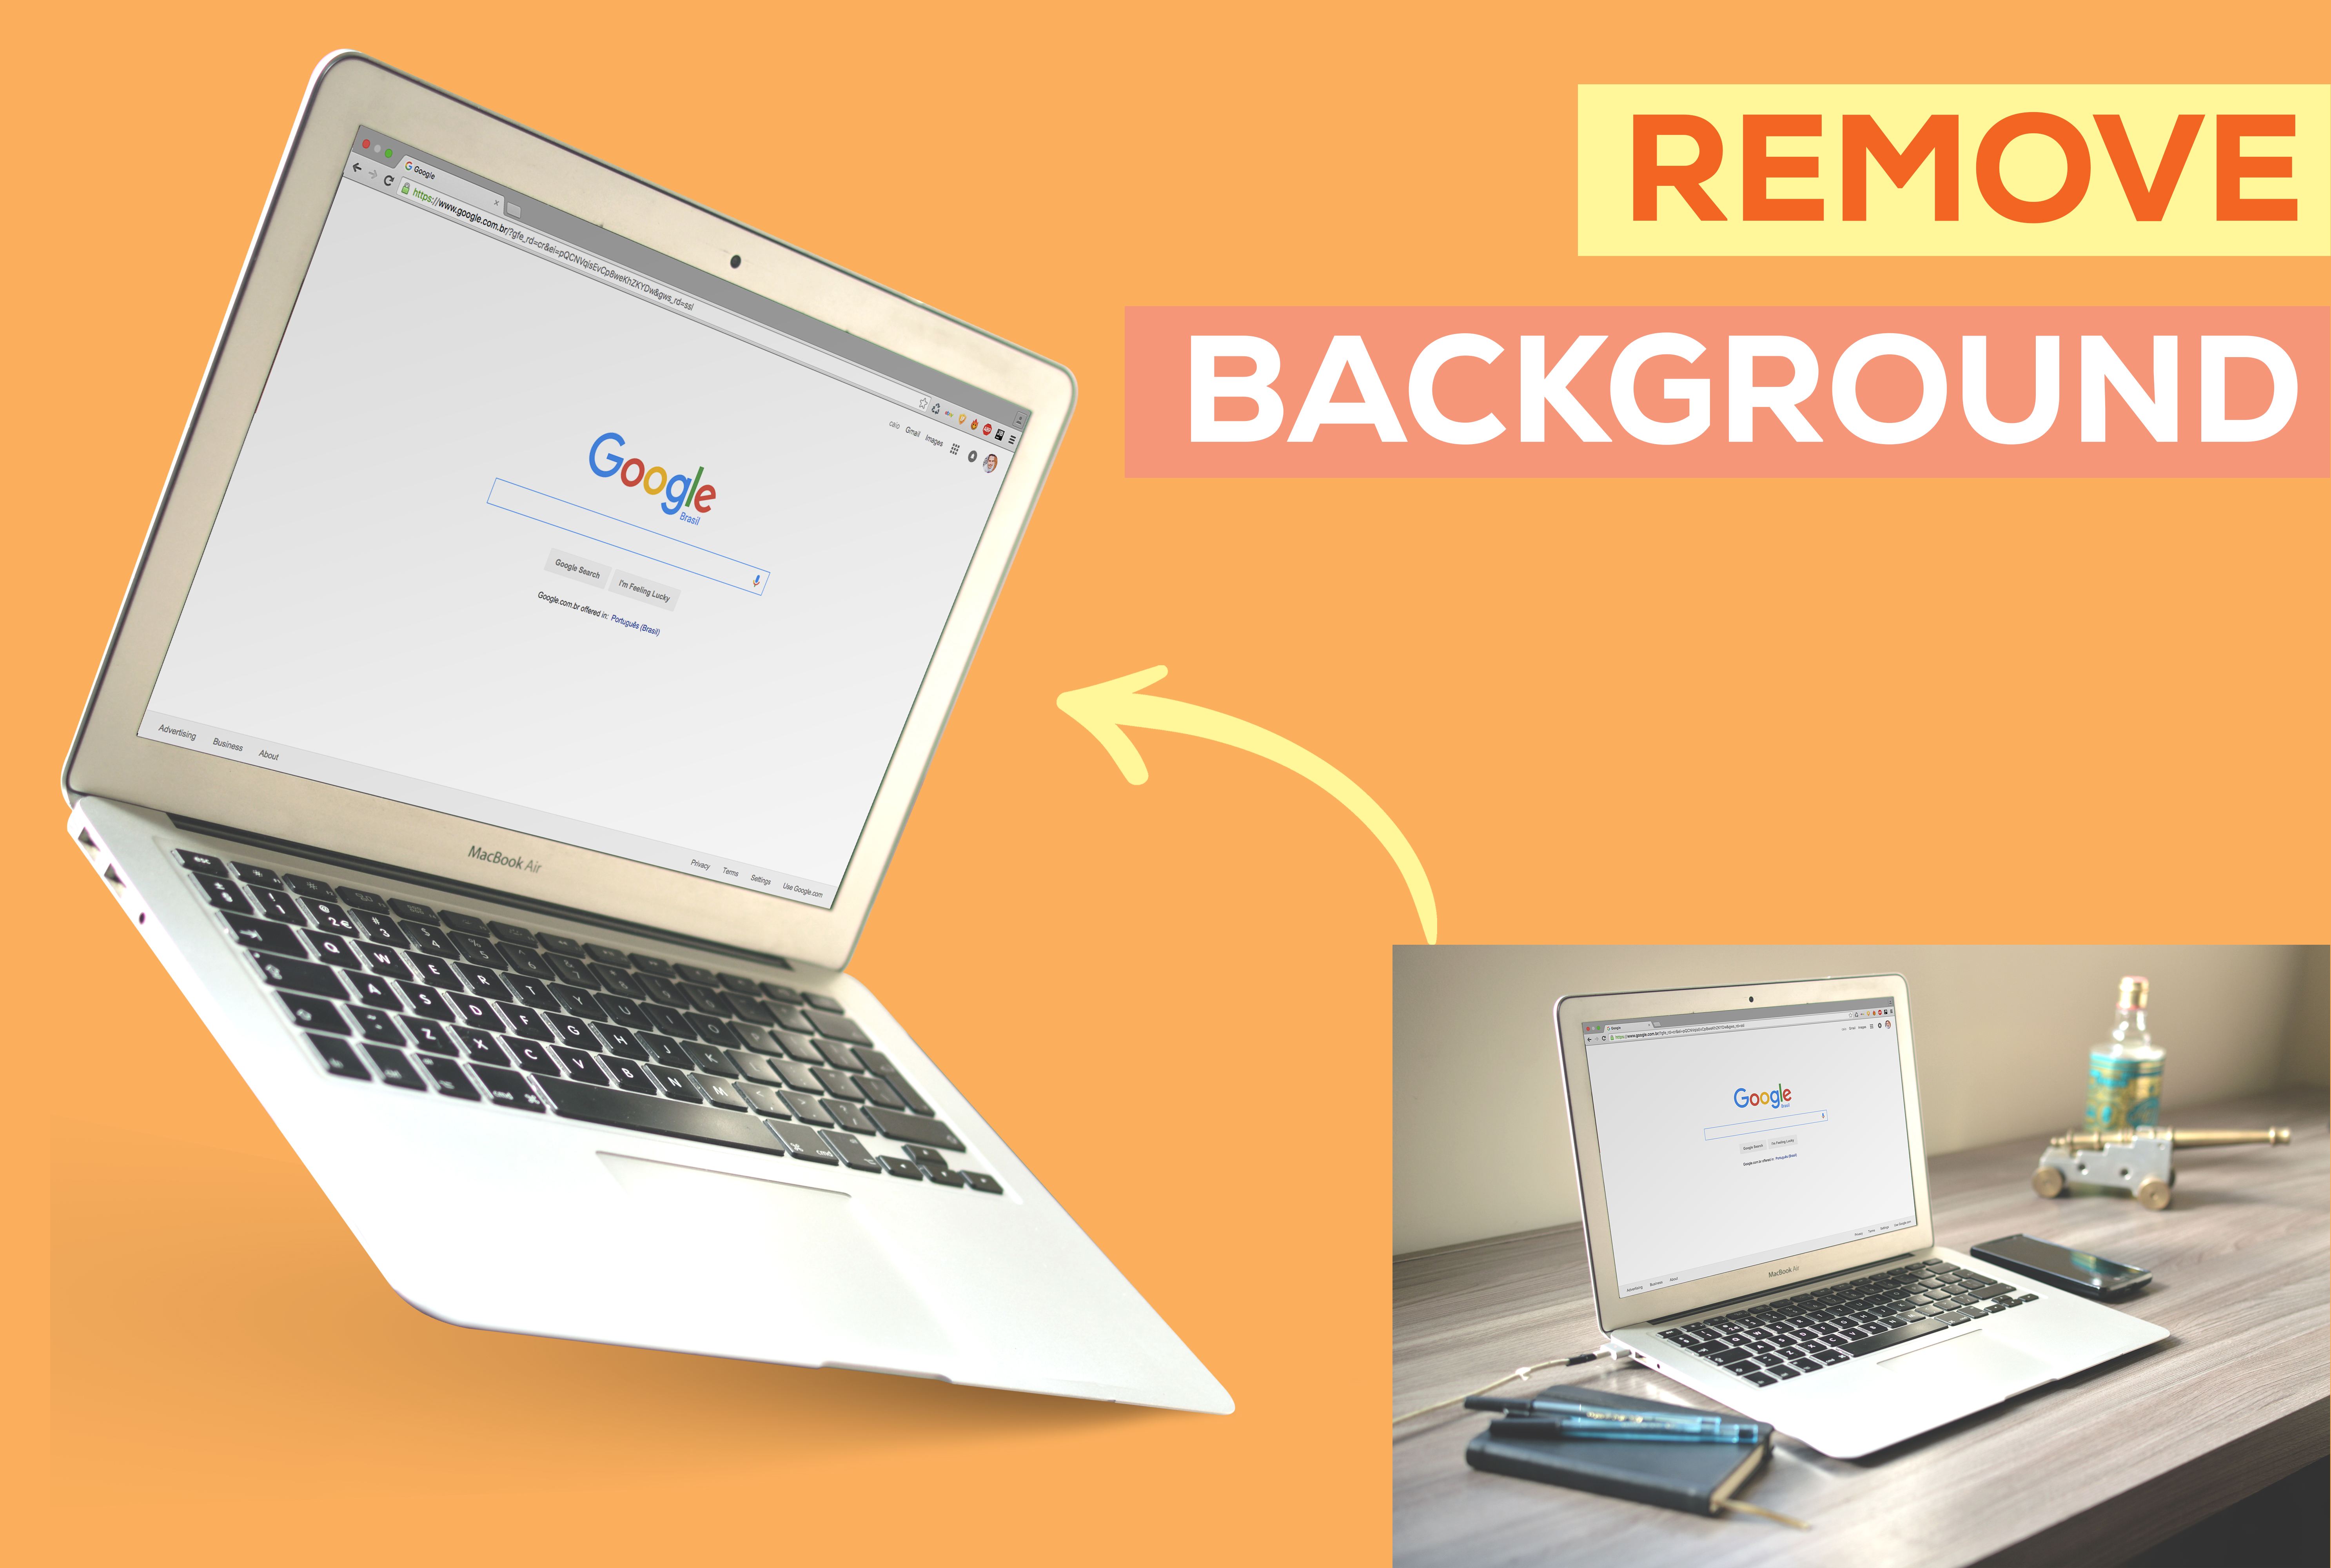 I will do product photo editing, retouch, background remove, clipping path 5 images